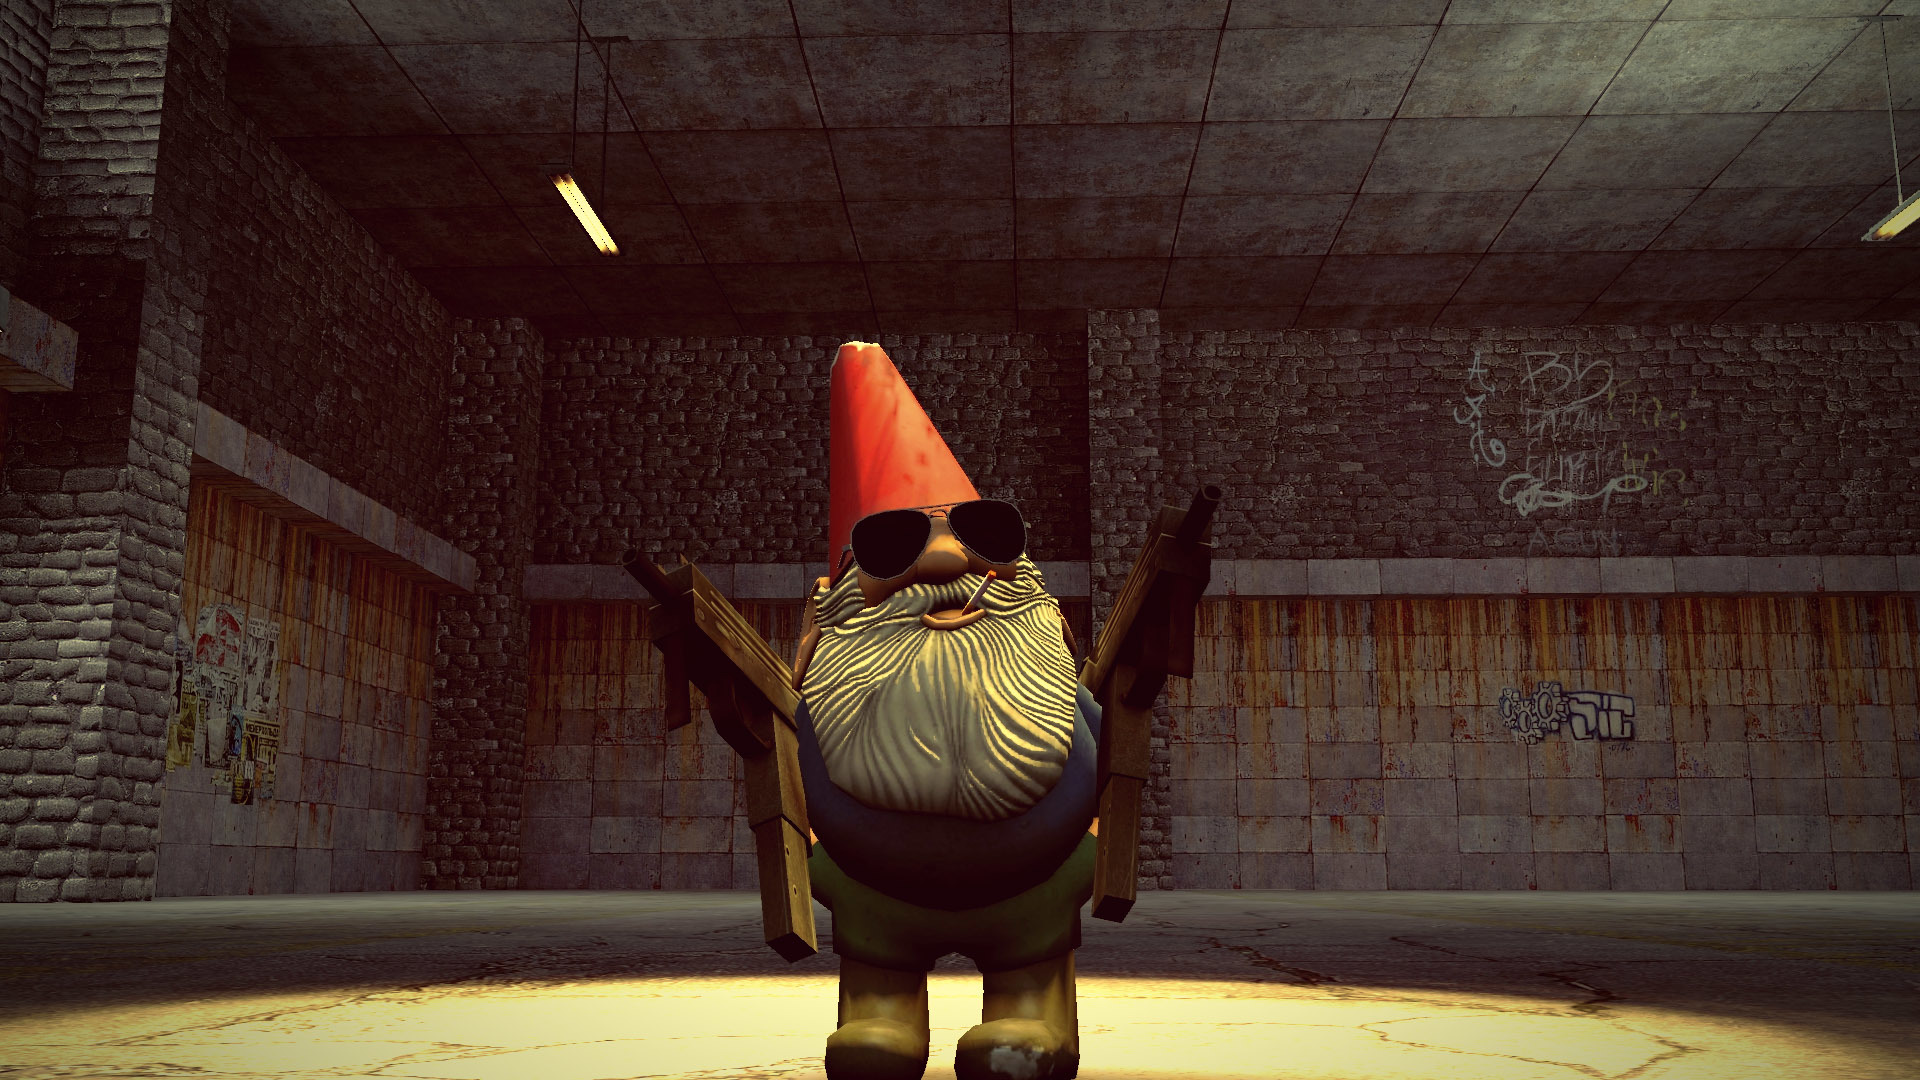 dwarfs gnomes Gnome Chompski HD Wallpaper